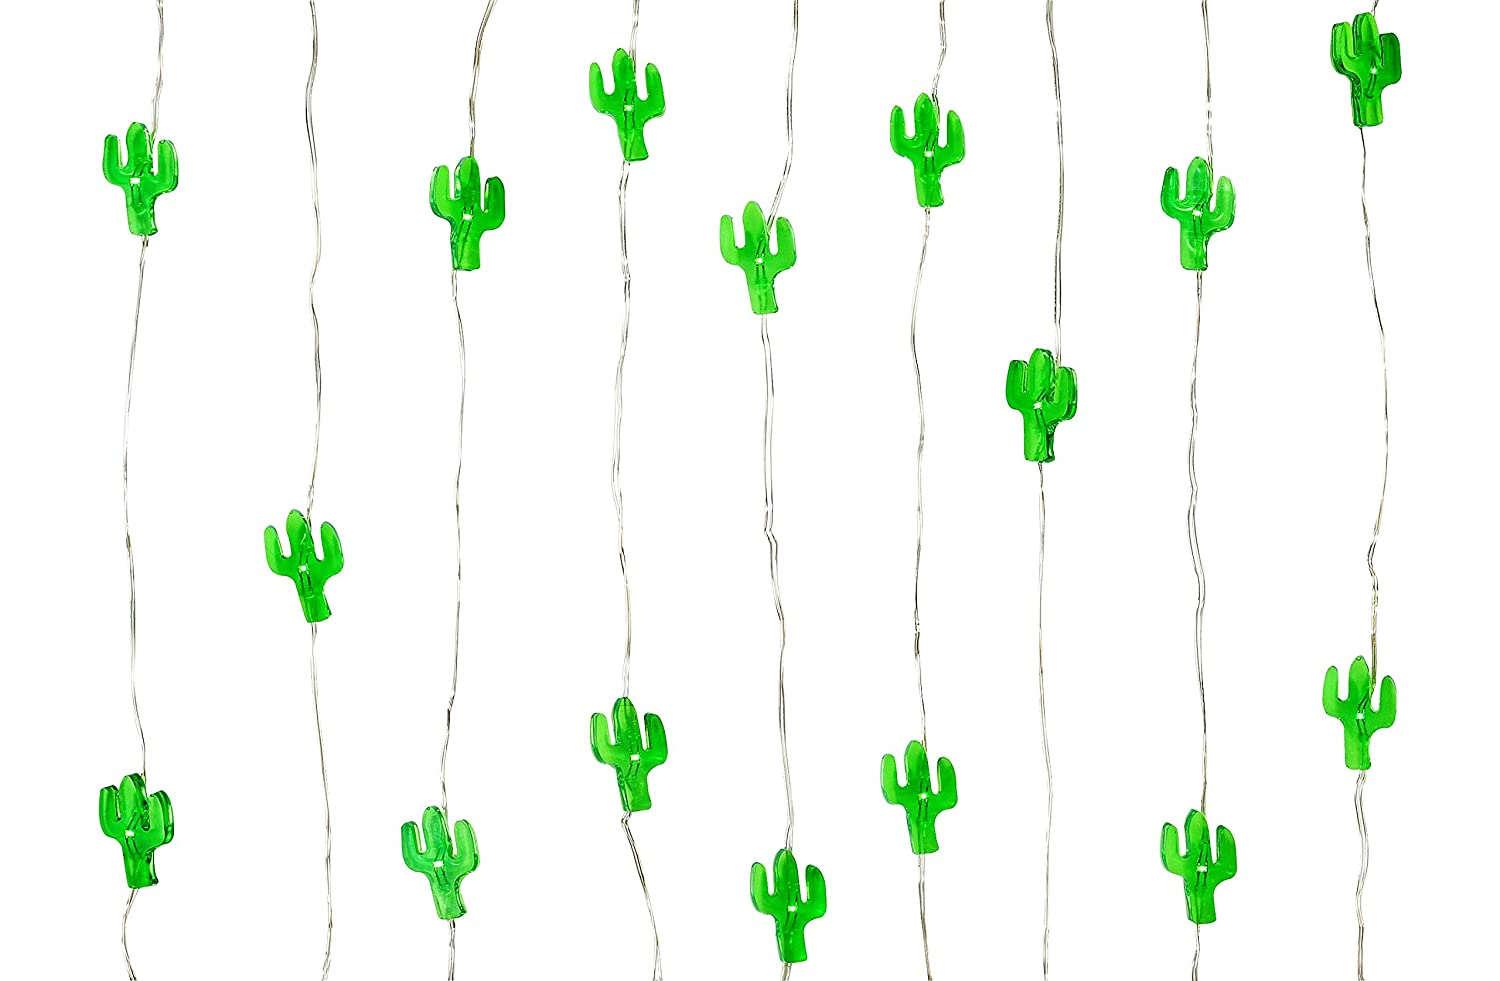 Talking Tables Cuban Fiesta Tropical Cactus Party String Lights